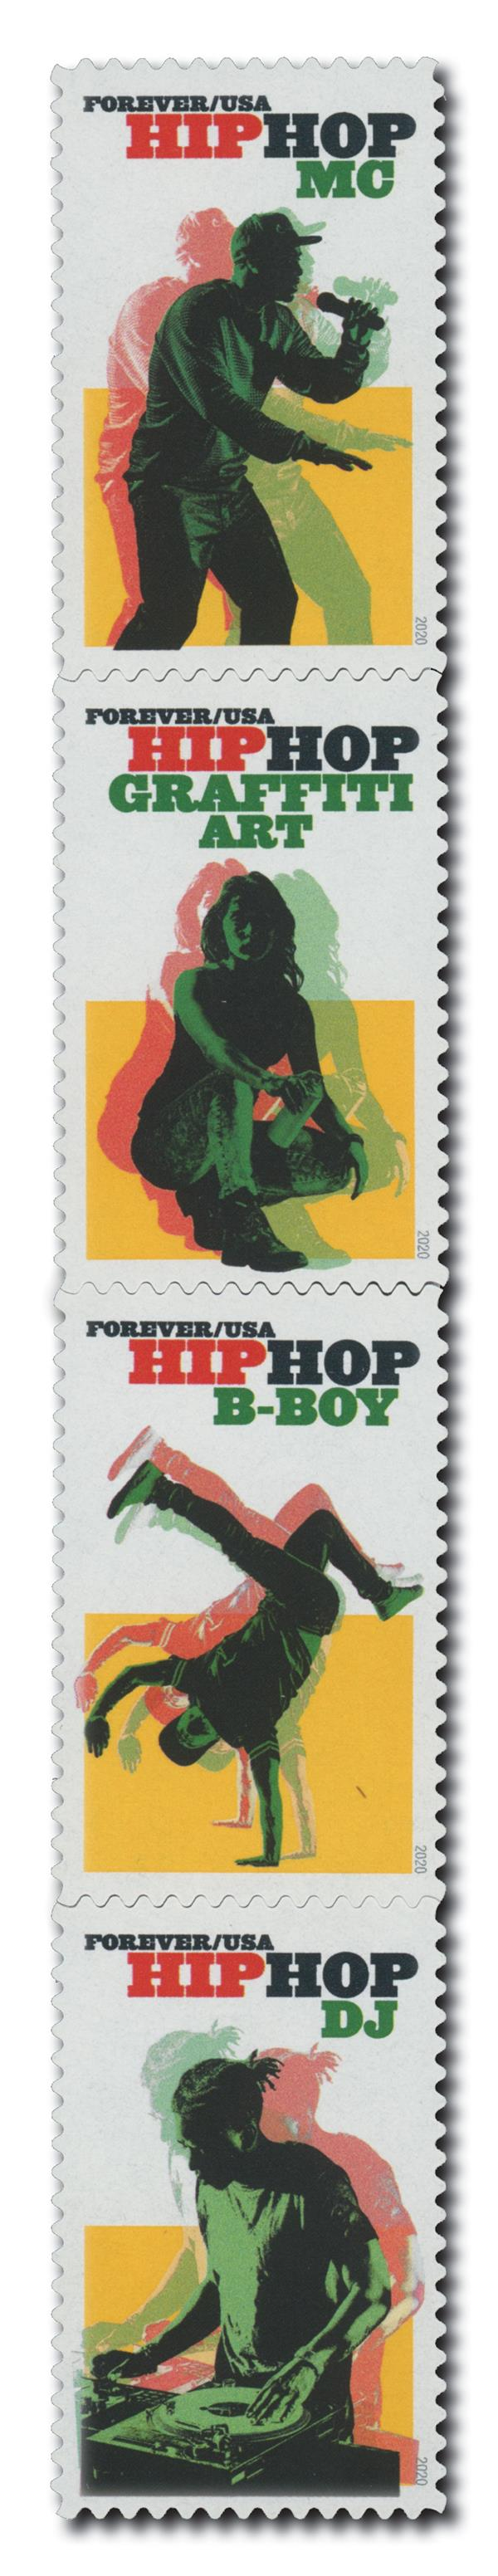 2020 First-Class Forever Stamps - Hip Hop